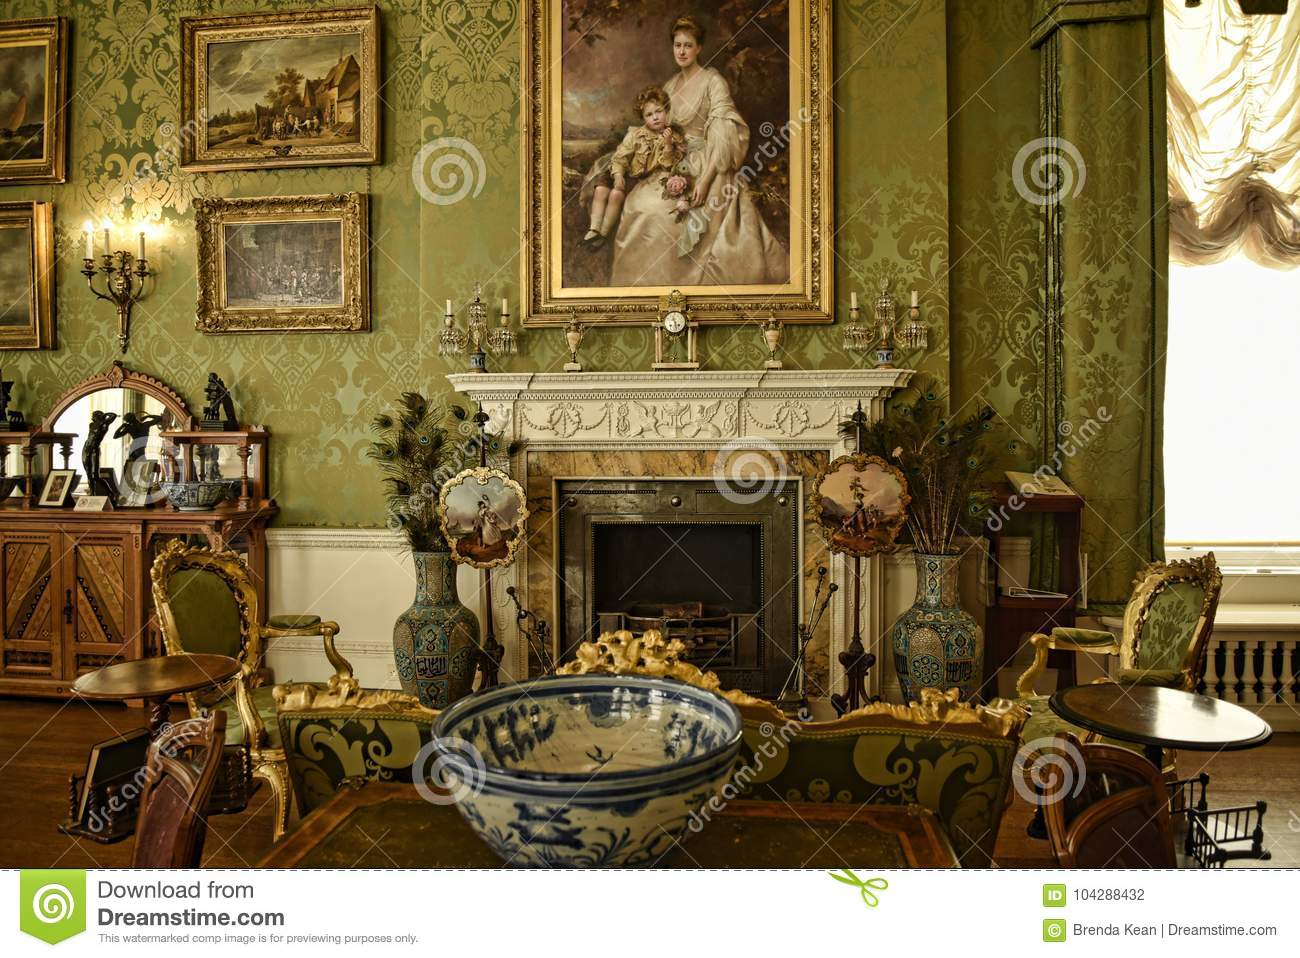 Interiors and art objects at a Beautiful Country House near Leeds West Yorkshire that is not a National Trust Property